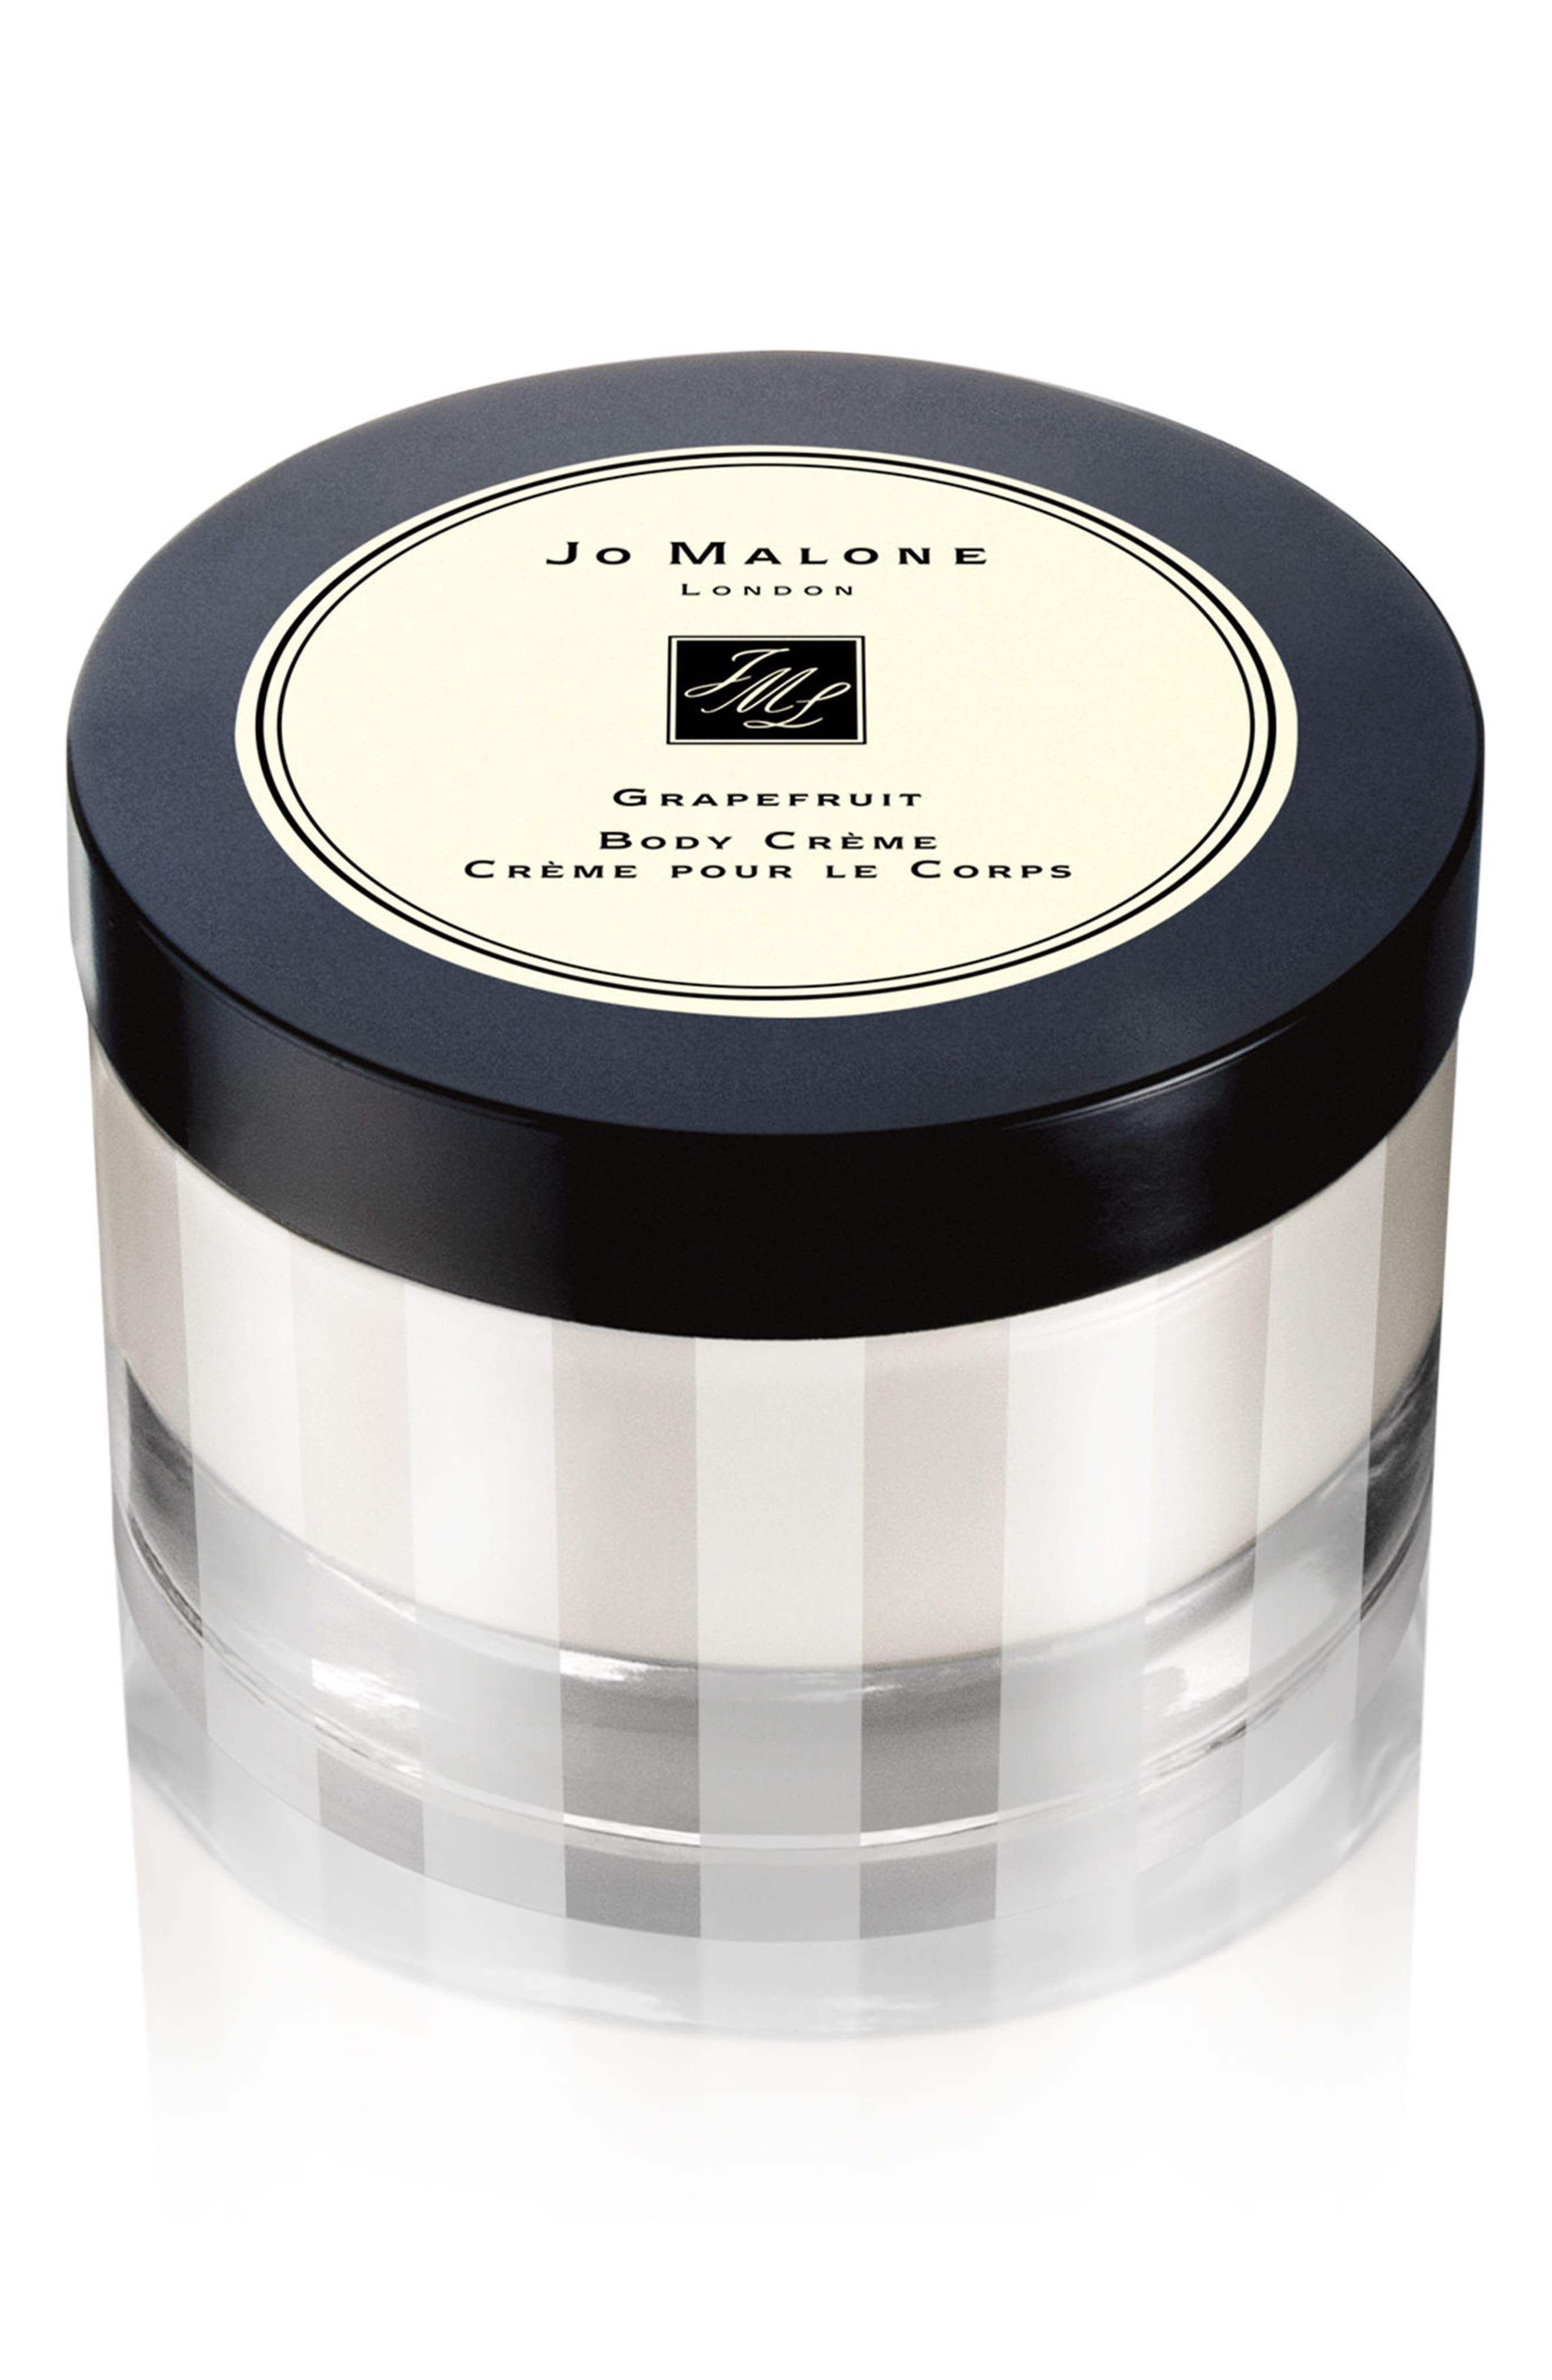 Jo Malone London™ 'Grapefruit' Body Crème